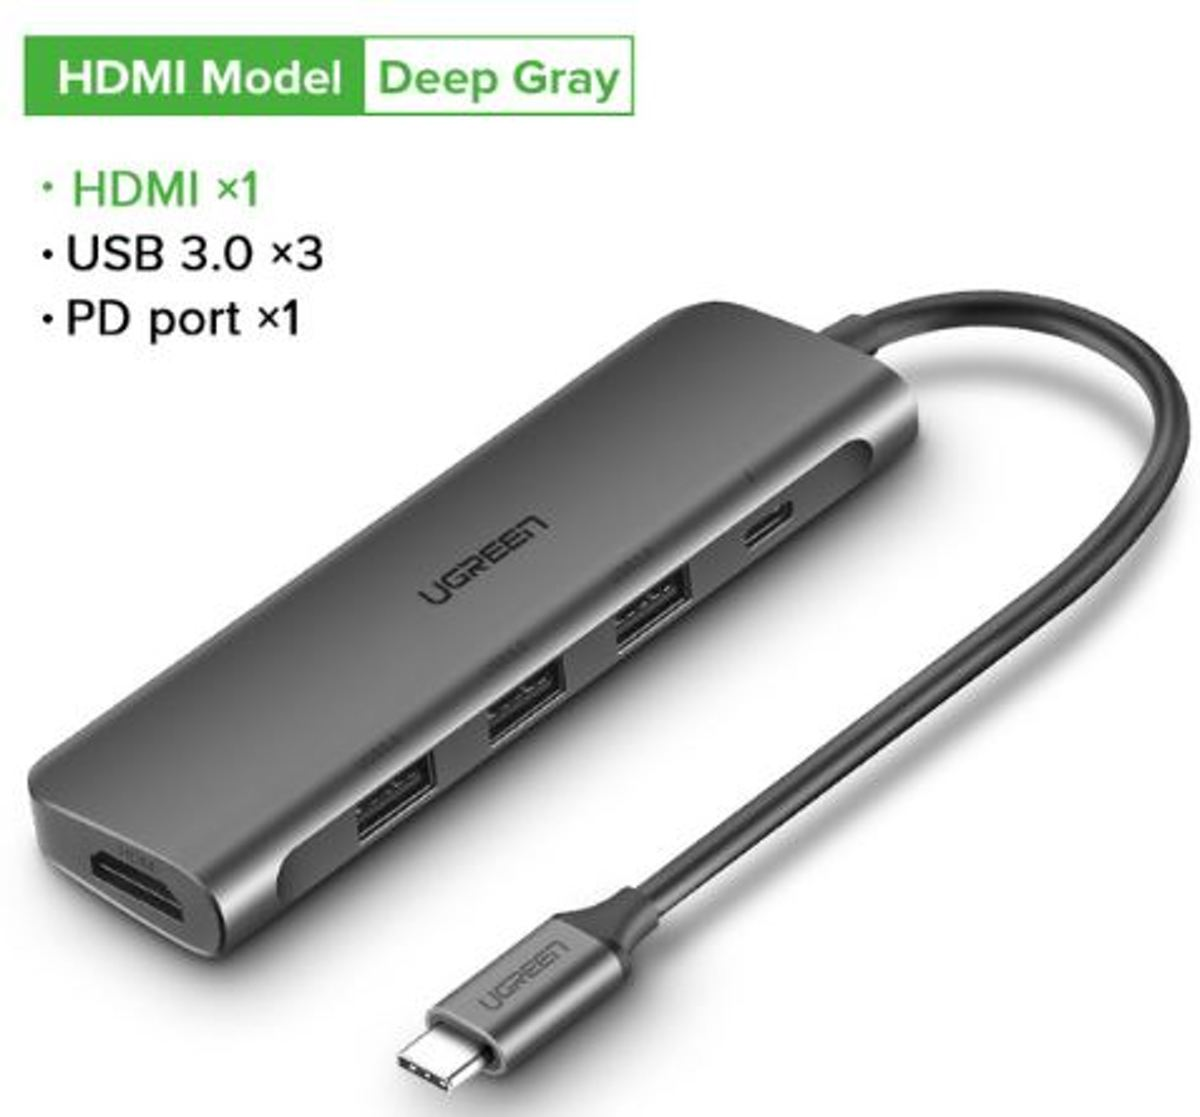 USB-C Docking Station   - HDMI 4K, USB-C en 3x USB 3.0 - MacBook (Thunderbolt 3) en Laptops